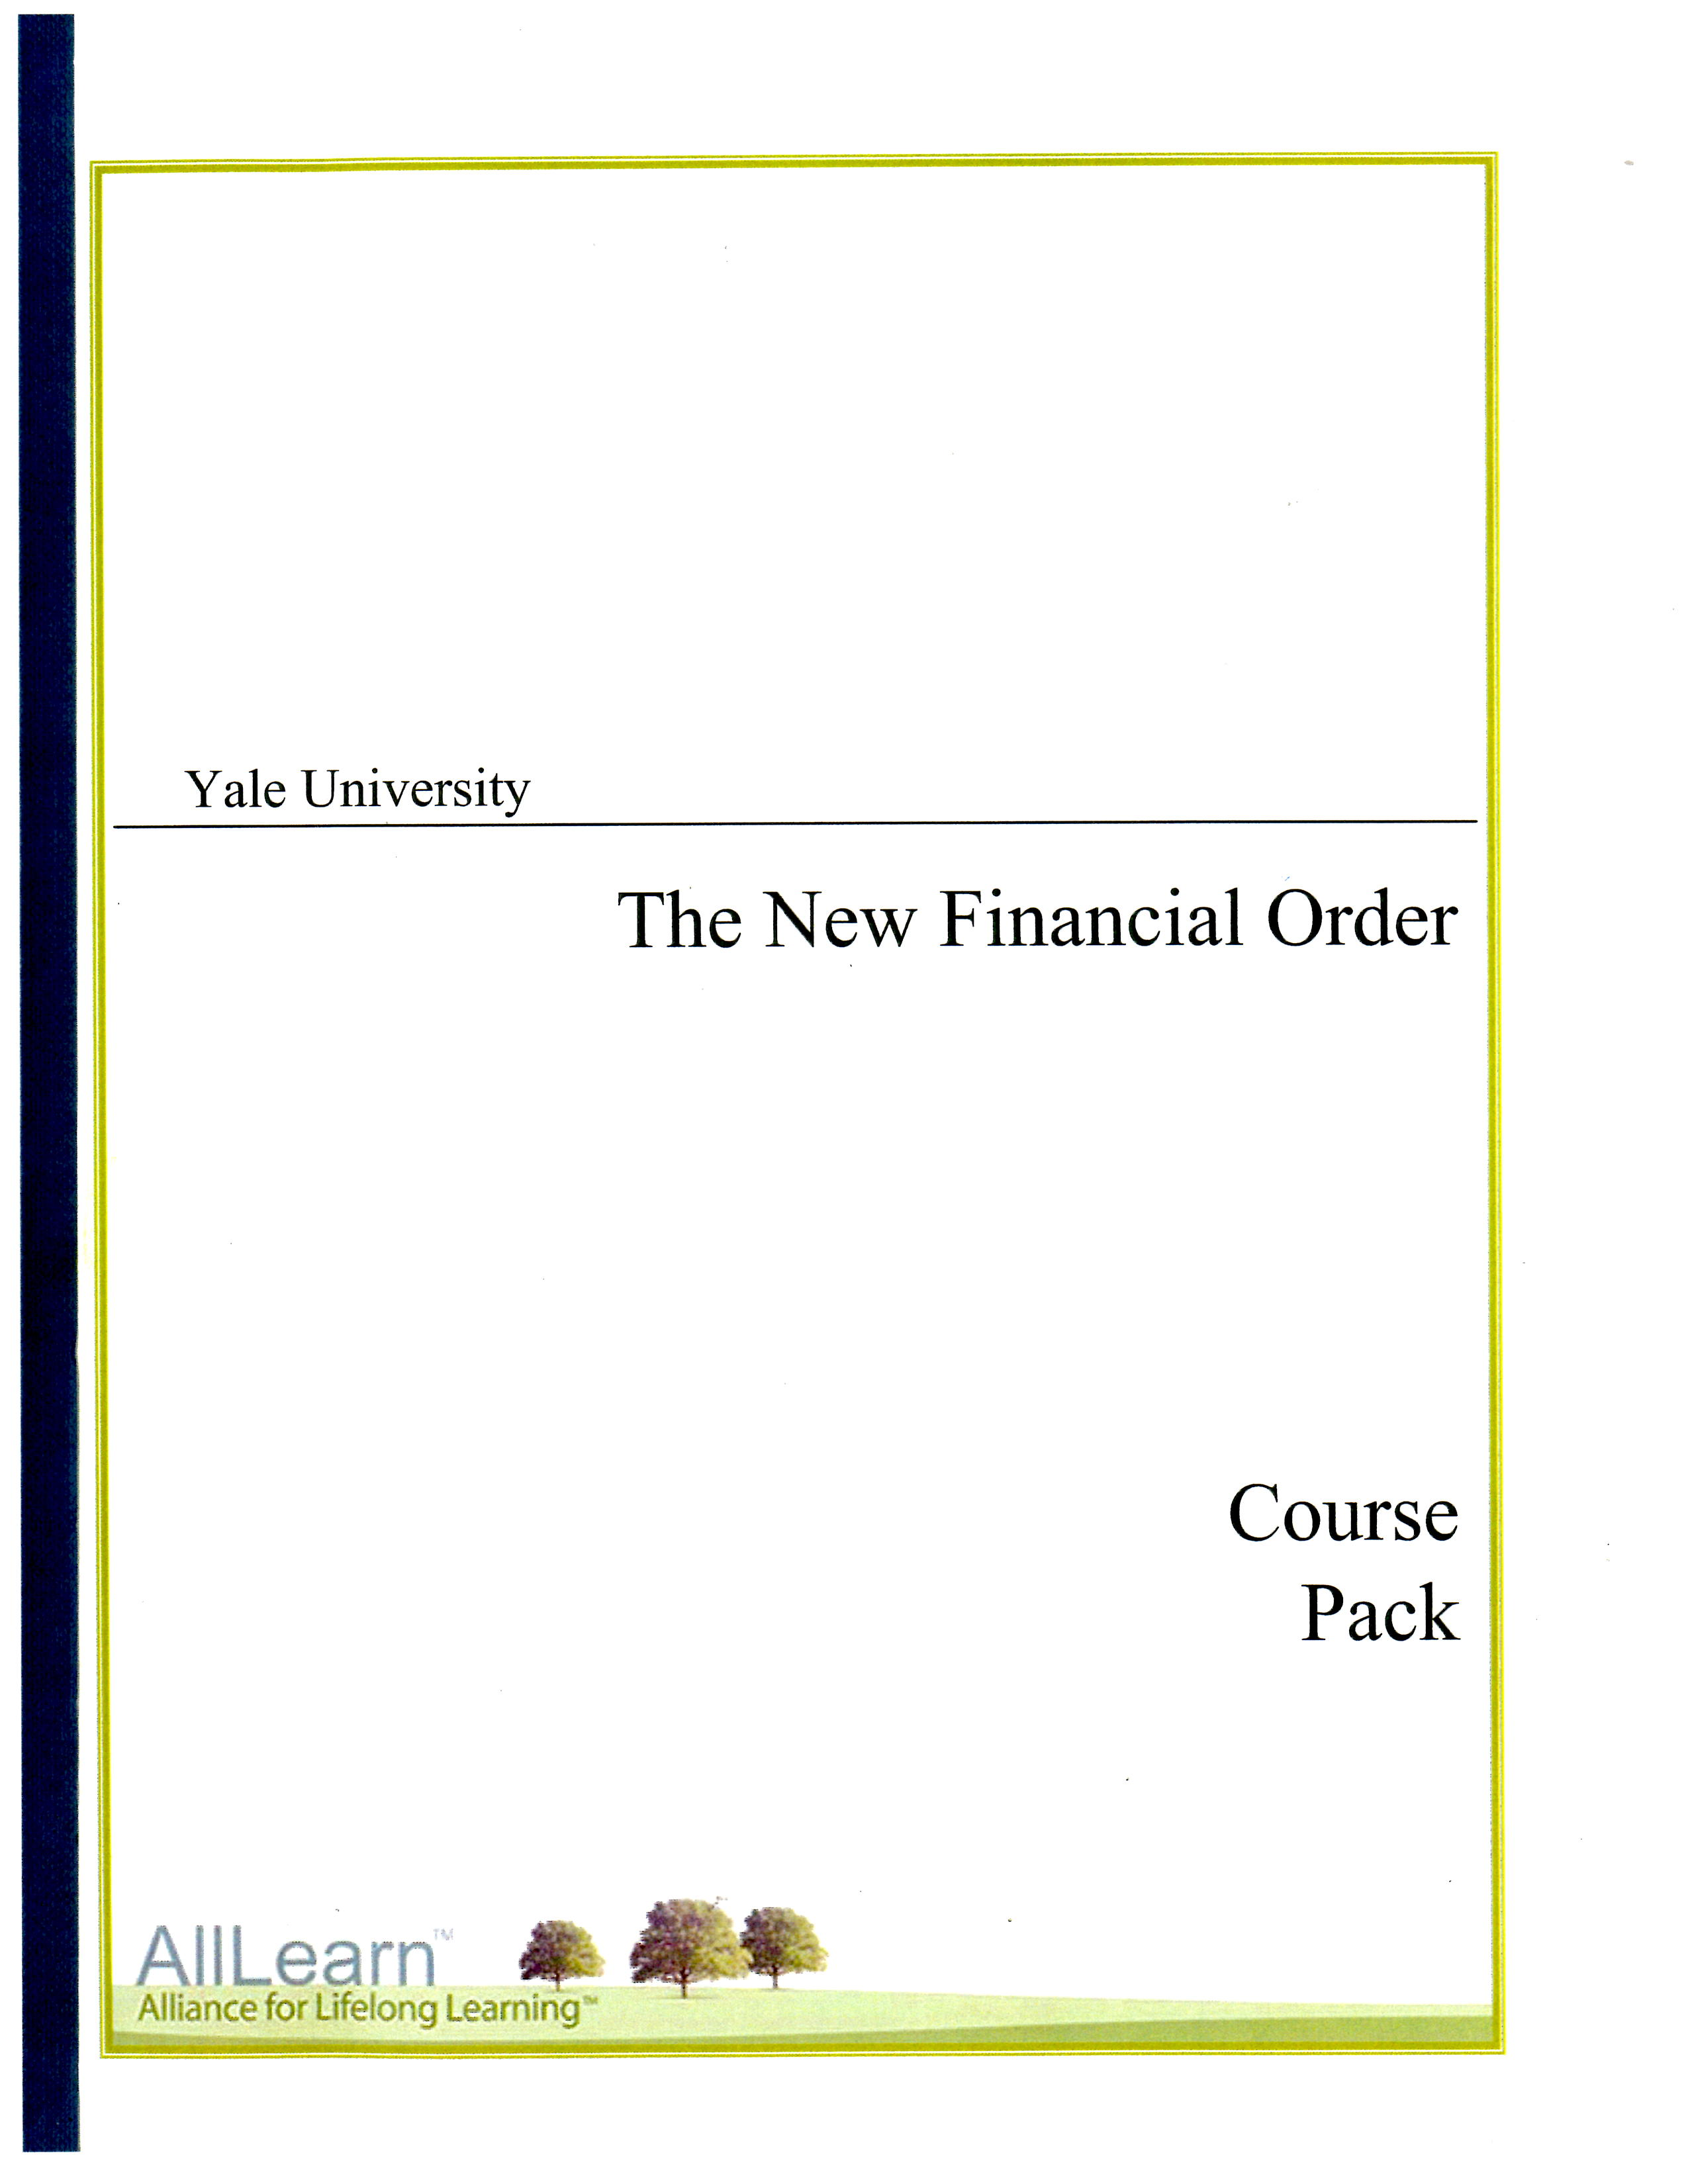 Blog - AllLearn 'The New Financial Order' - Yale